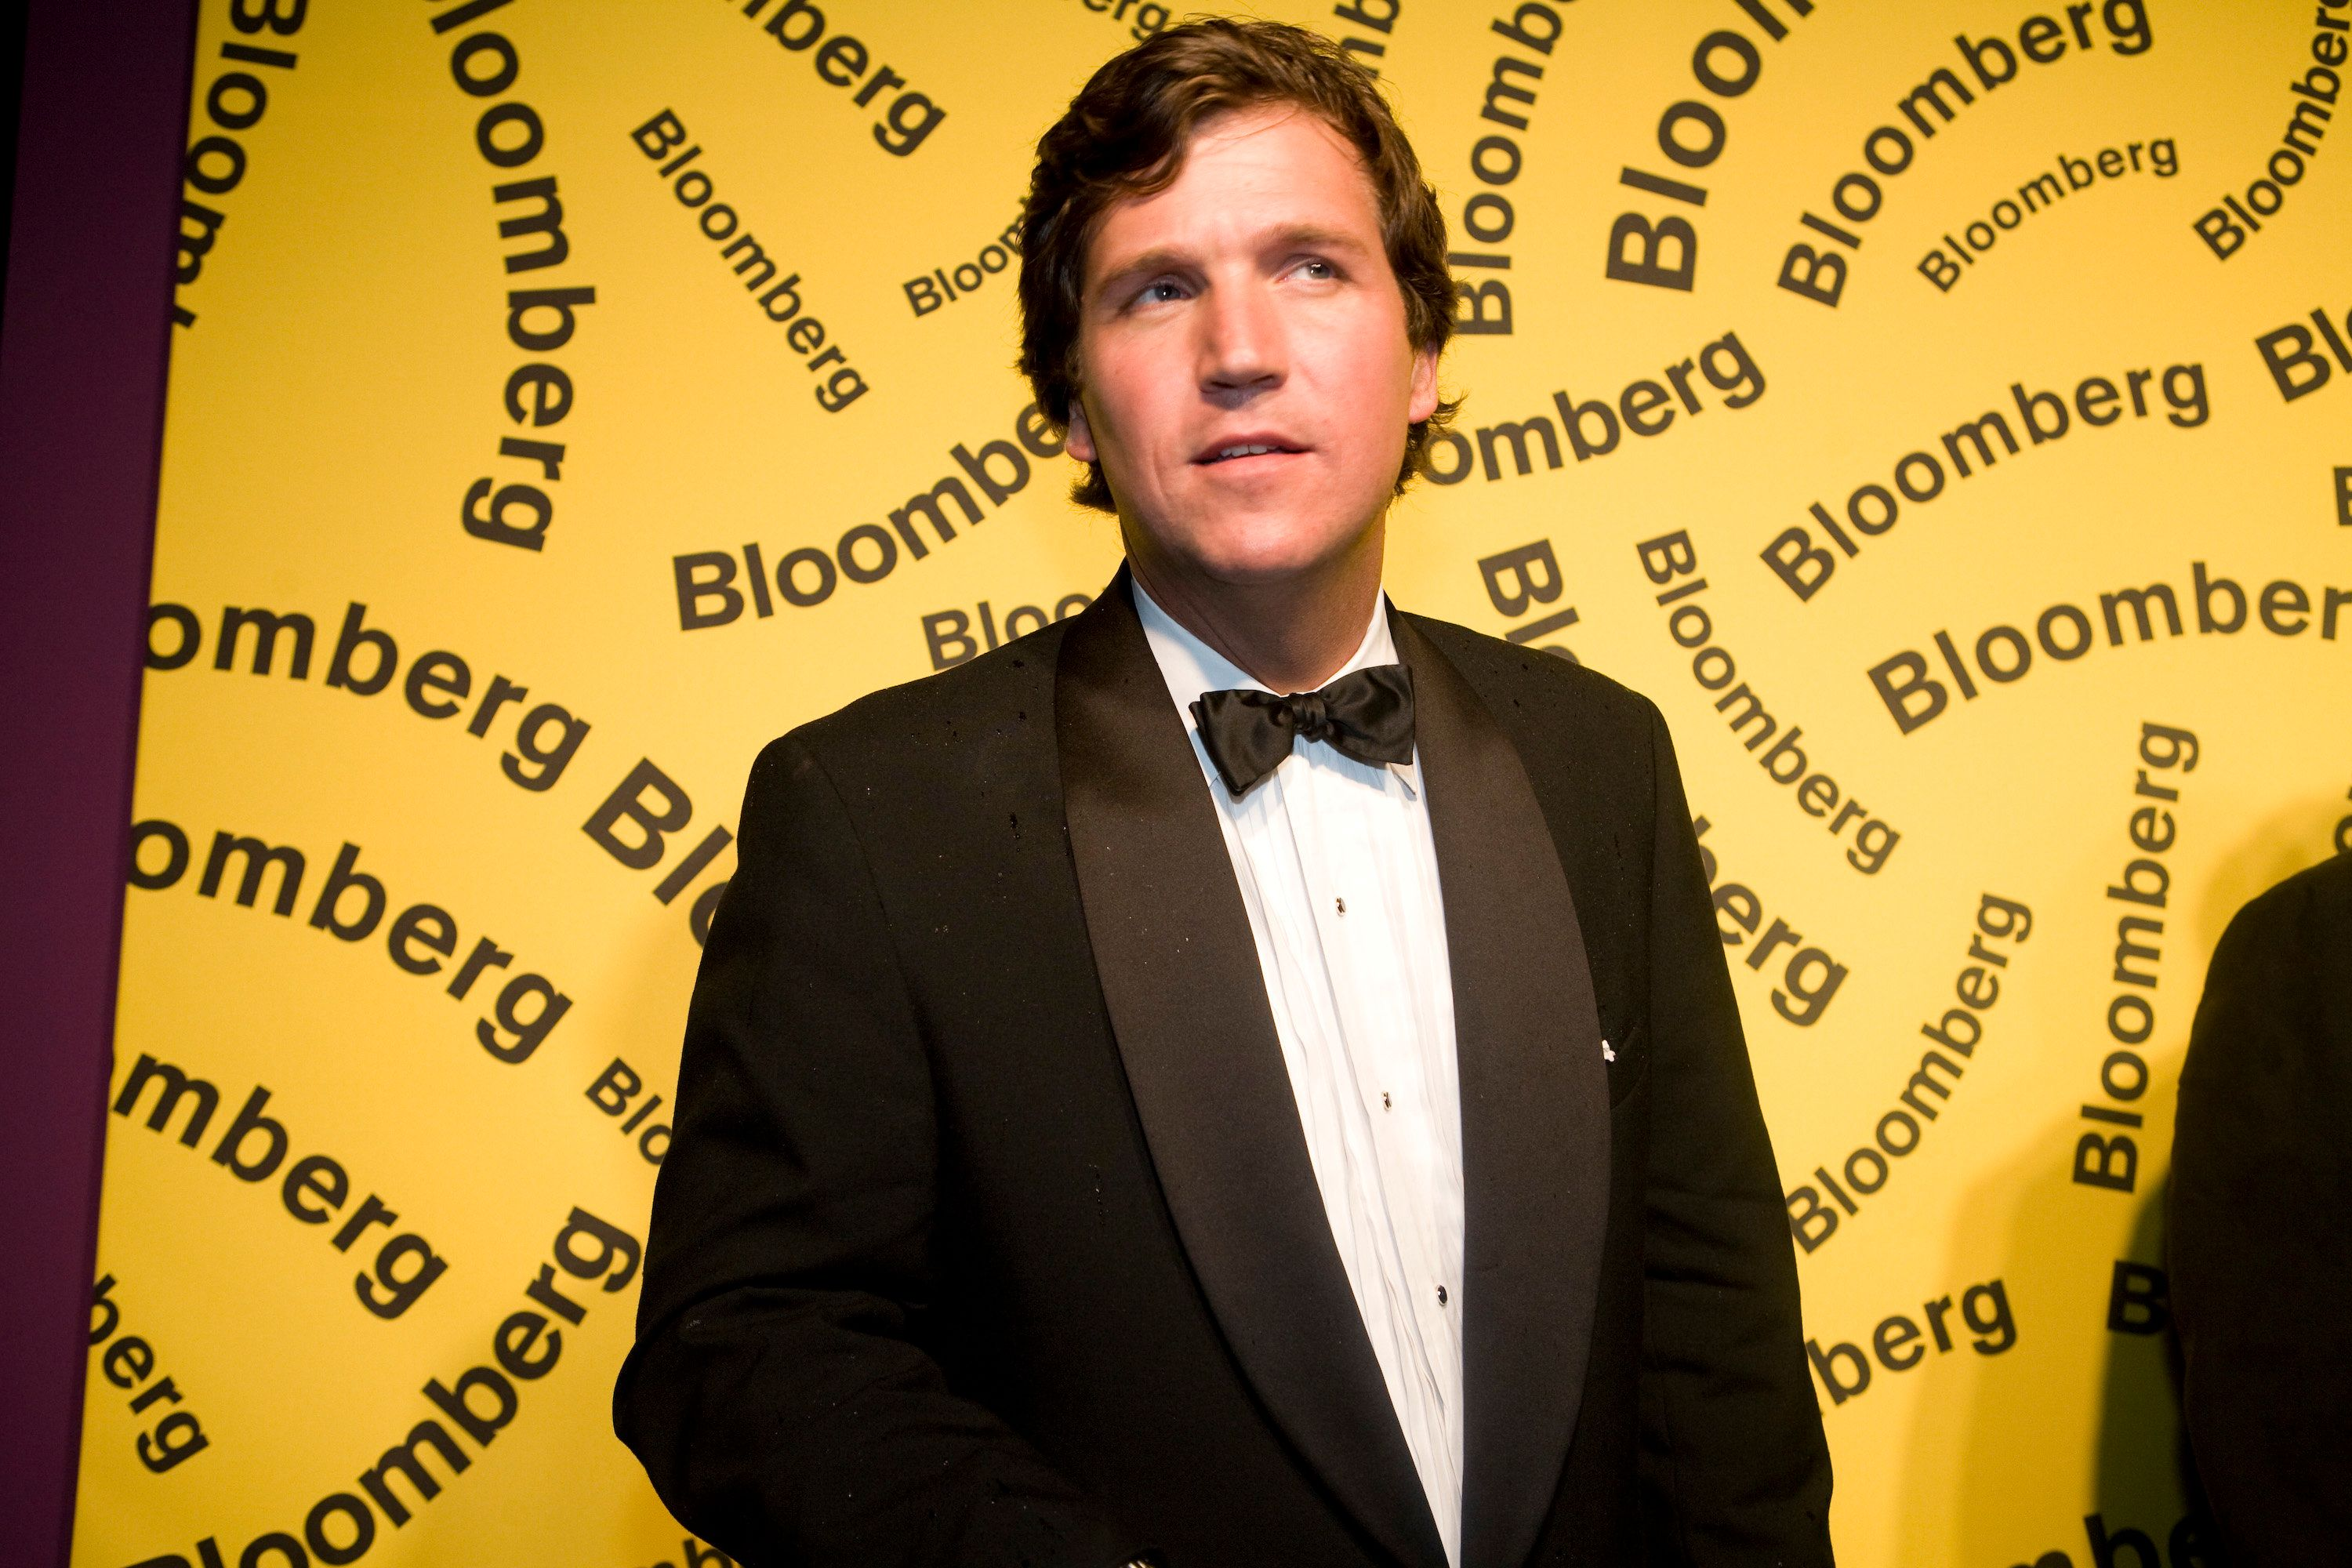 WASHINGTON - APRIL 26: TV host Tucker Carlson arrives at the Bloomberg afterparty following the White House Correspondents' Dinner April 26, 2008 in Washington, DC.  (Photo by Brendan Hoffman/Getty Images)